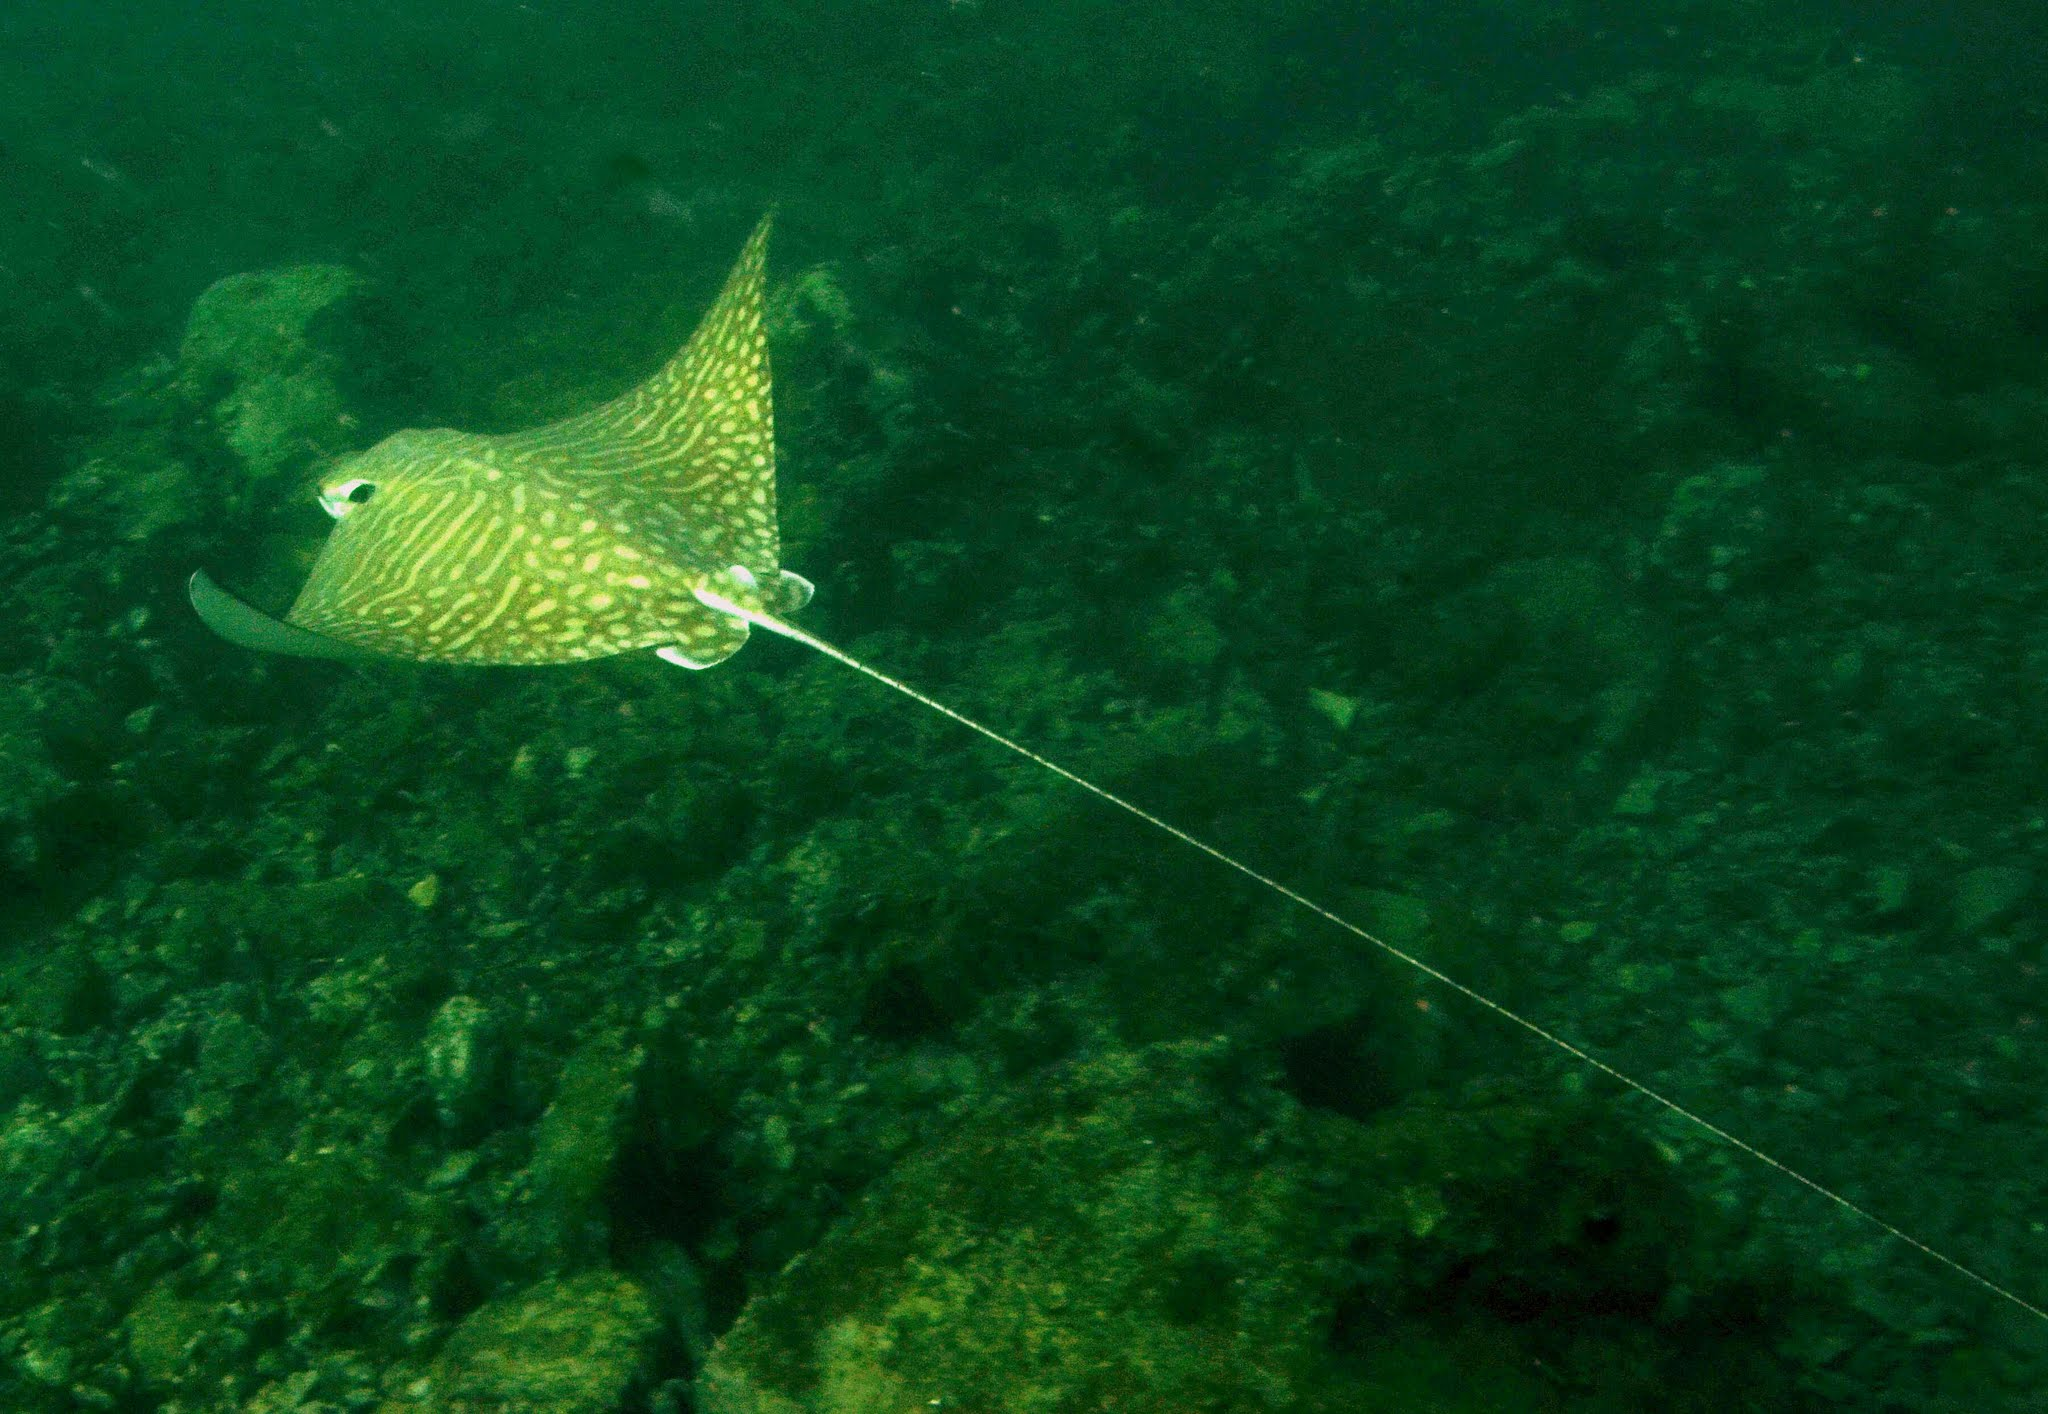 mottled-eagle-ray-Aetomylaeus-maculatus-west-indo-pacific-endangered-by-demersal-inshore-fishing